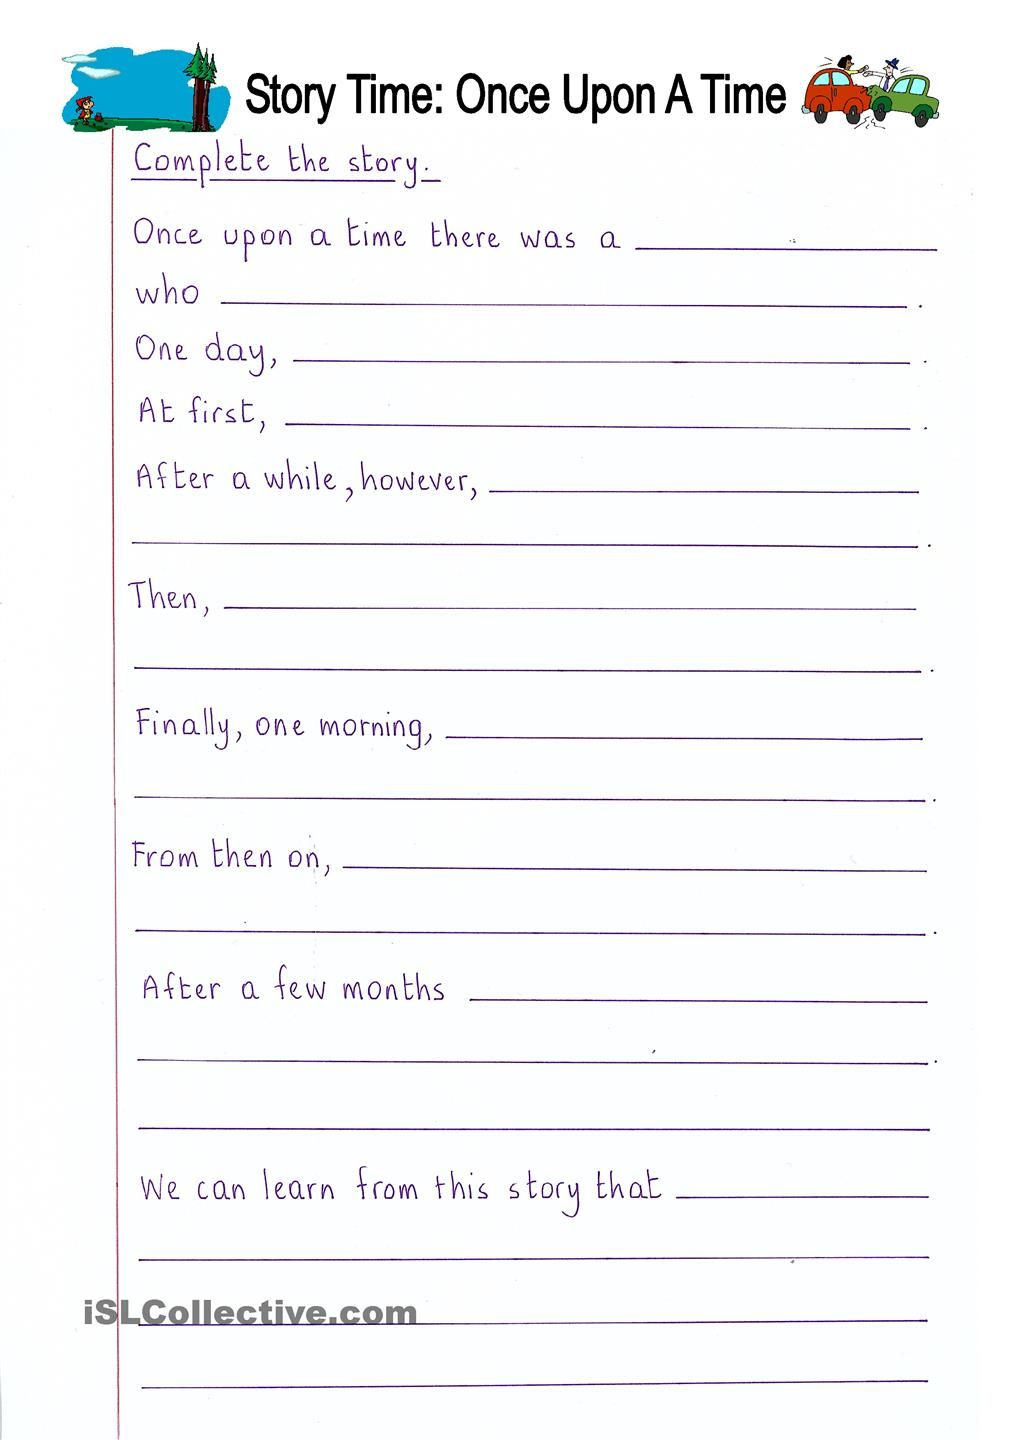 Read and Complete - Once Upon a Time (story writing)   Writing worksheets [ 1440 x 1018 Pixel ]